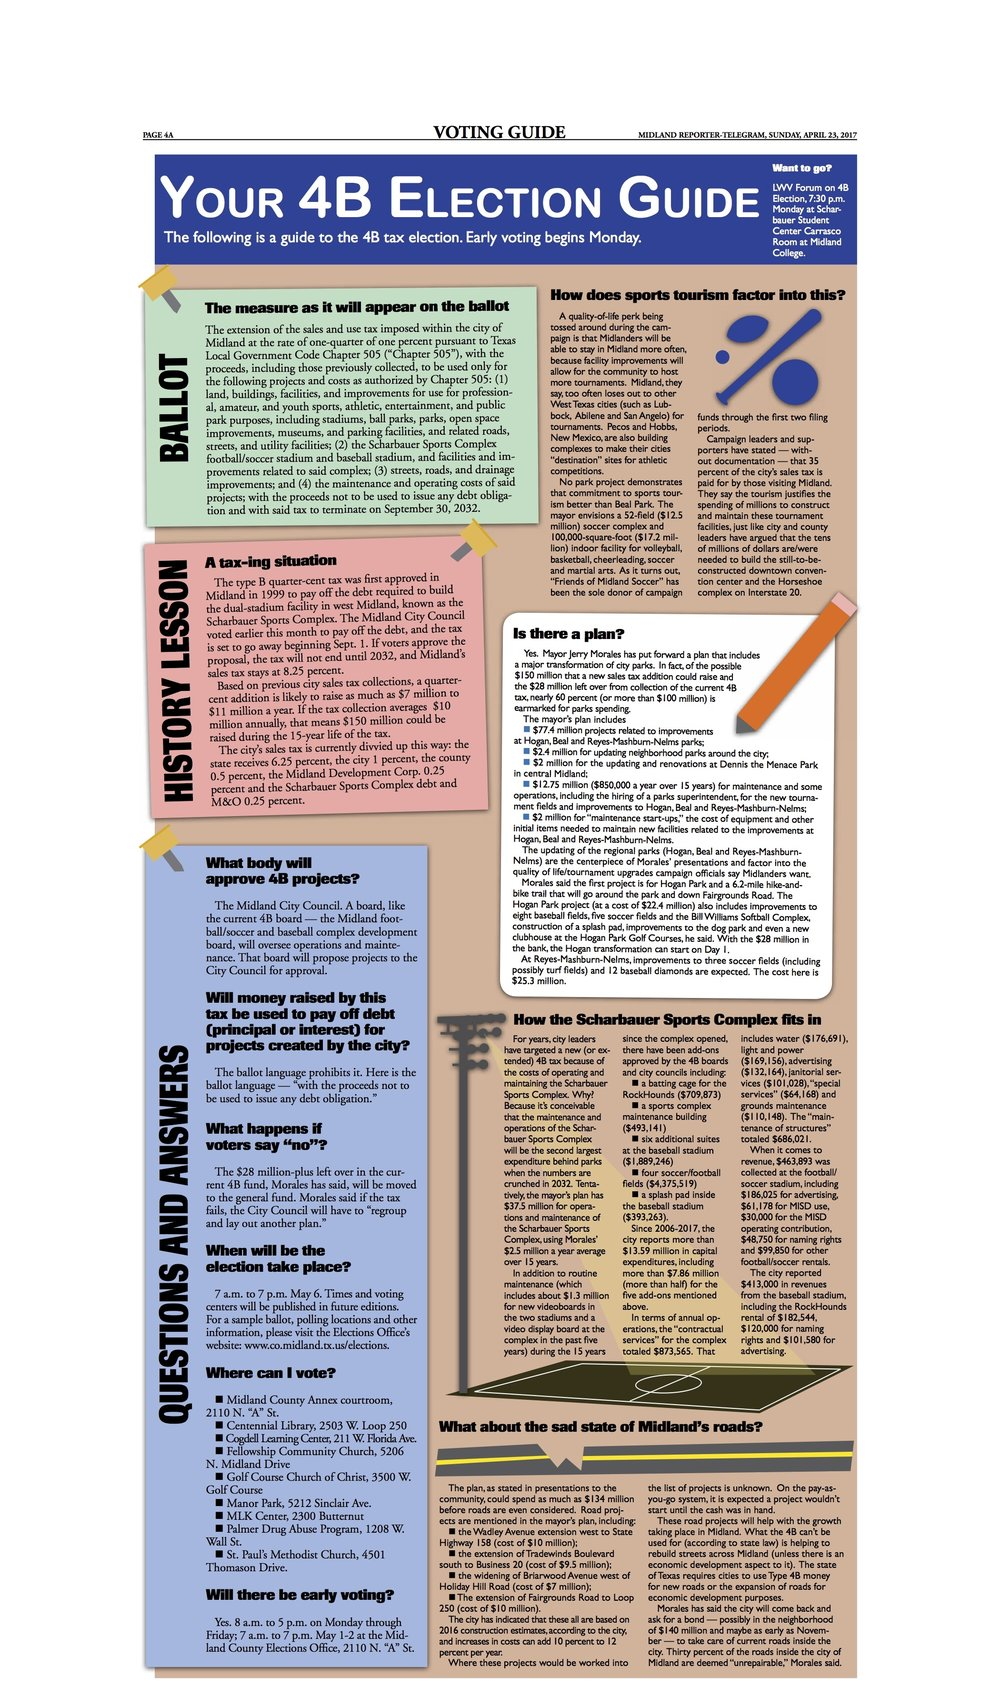 4B Election Newspaper Guide   This is the  a guide  I created for an election in Midland, Texas, as part of my work as a copyeditor for the Midland Reporter-Telegram. The guide runs through some of the history surrounding the election, details about what the 4B tax entailed, and what the tax would do to existing structures in the city.